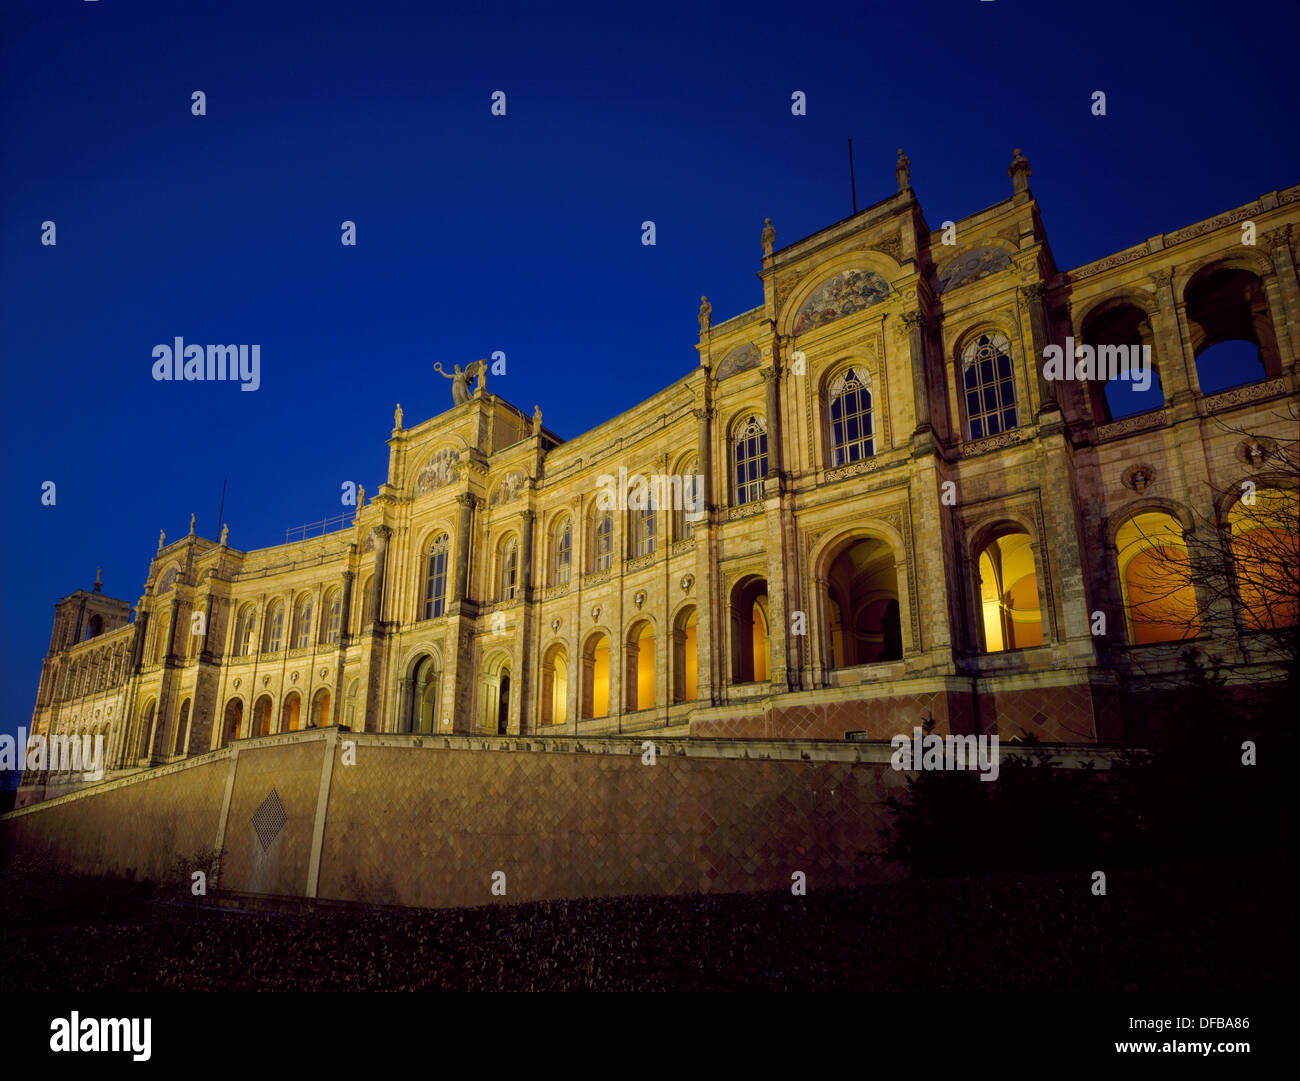 Maximilianeum building, home of the Bavarian Landtag (Architect Friedrich Bürklein). Munich. Germany - Stock Image